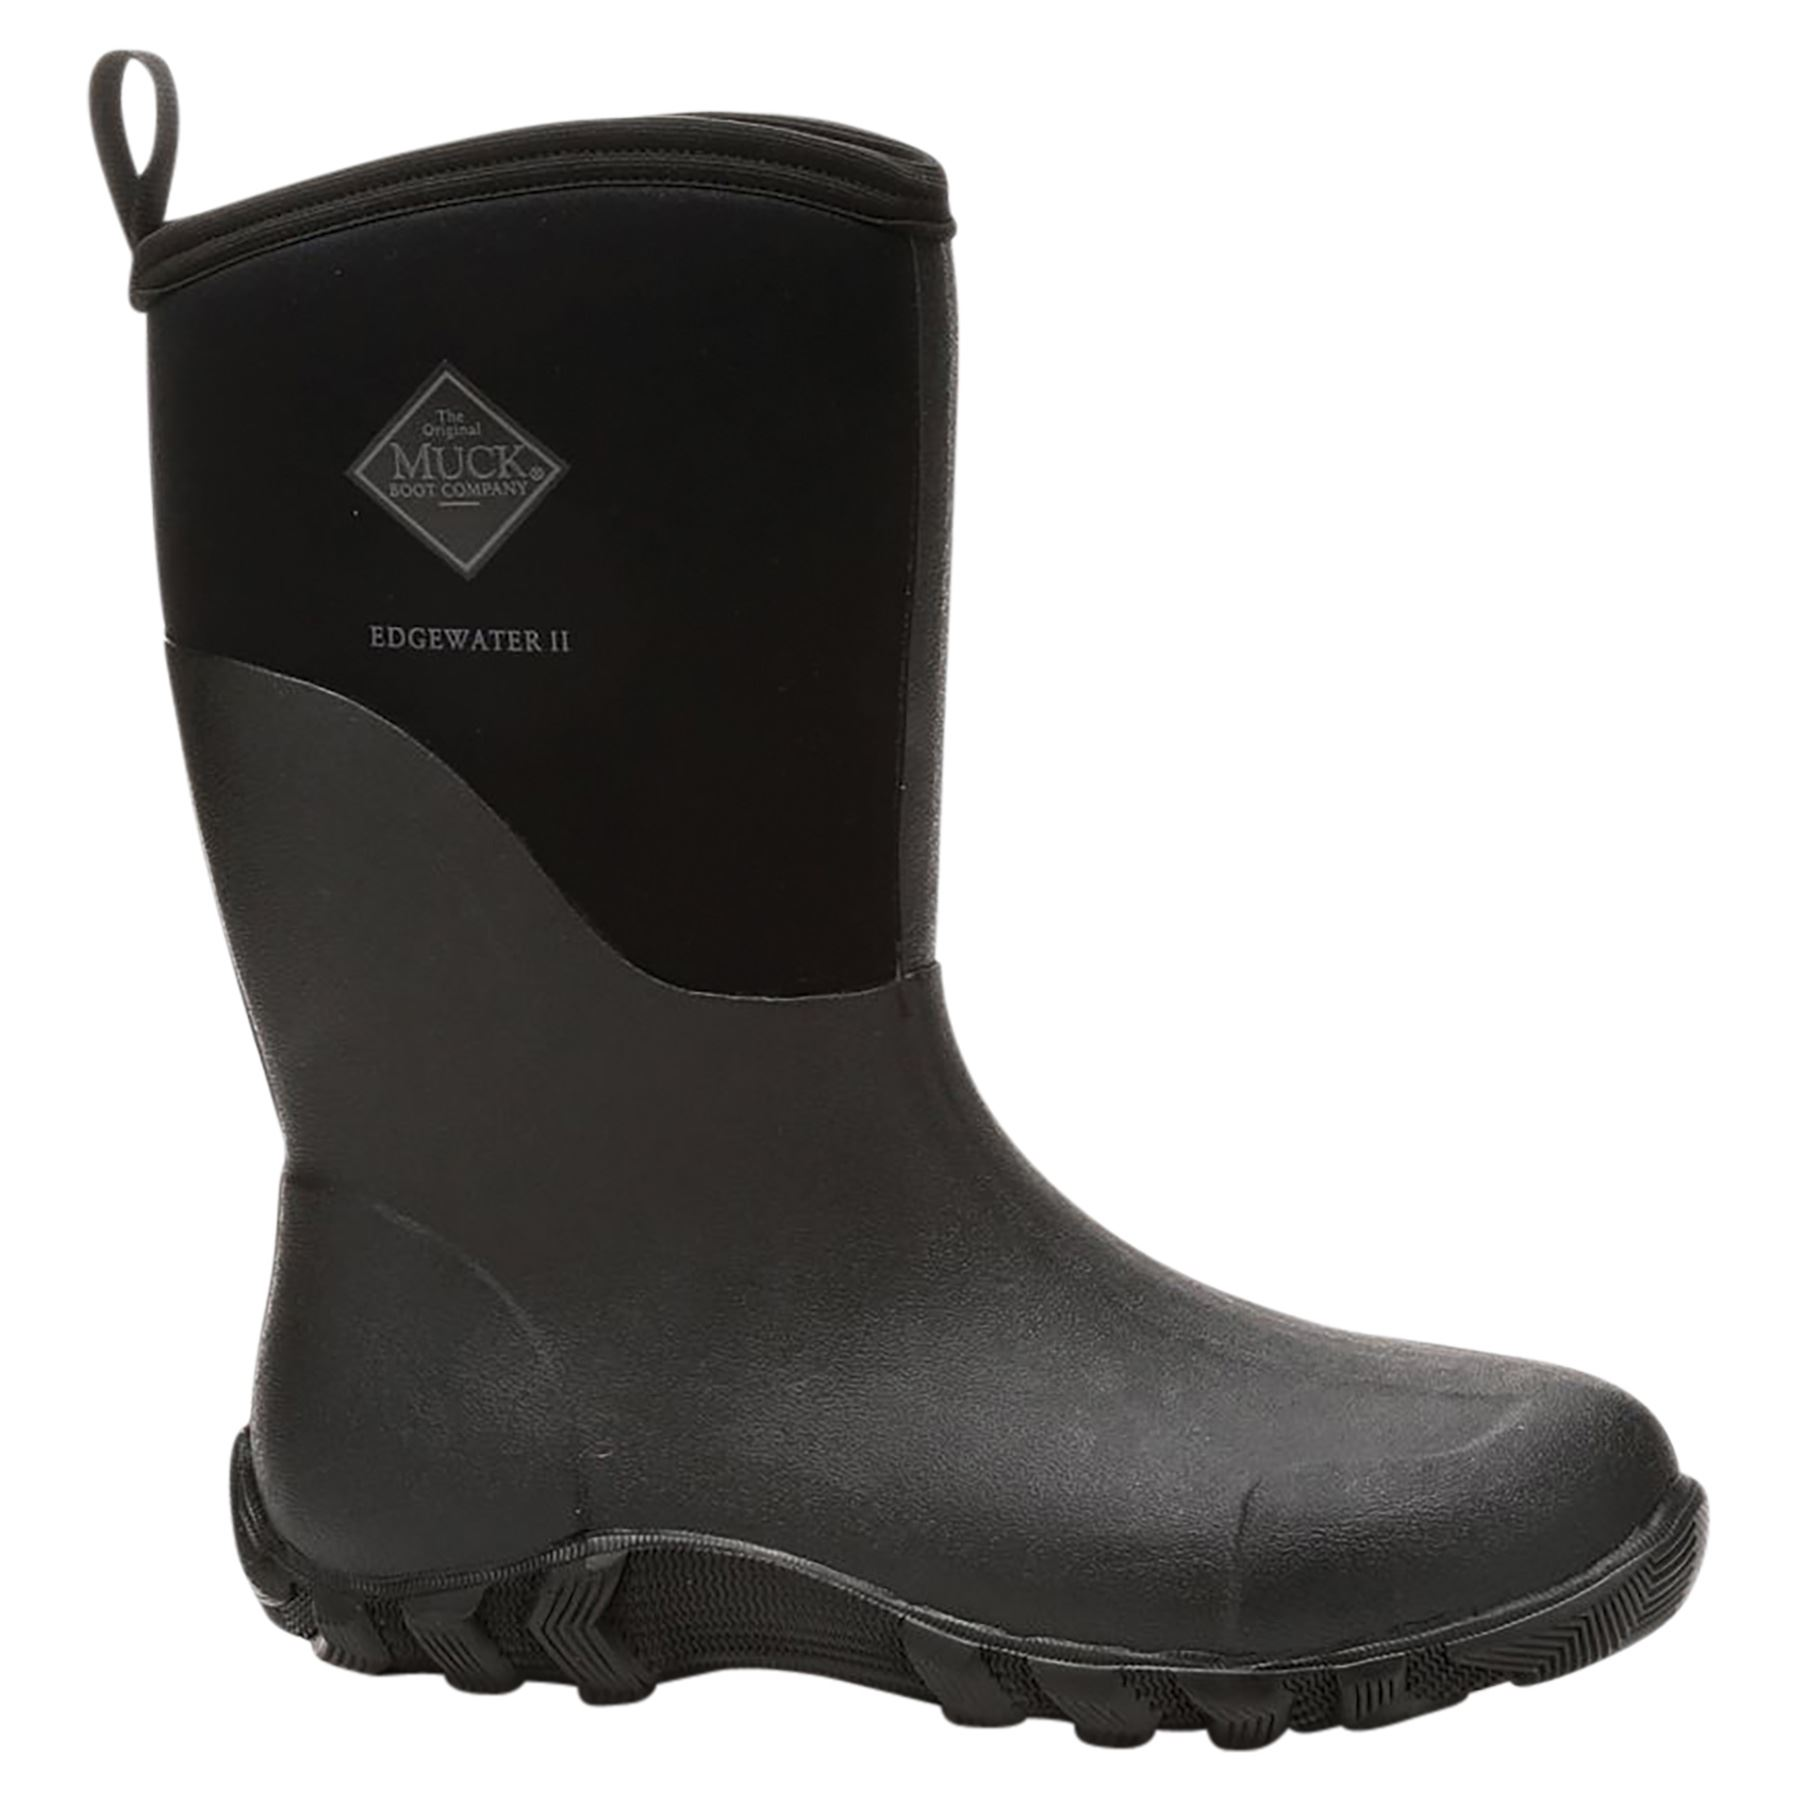 832b3a774ca The Original Muck Boot Company® Edgewater II Mid Boots